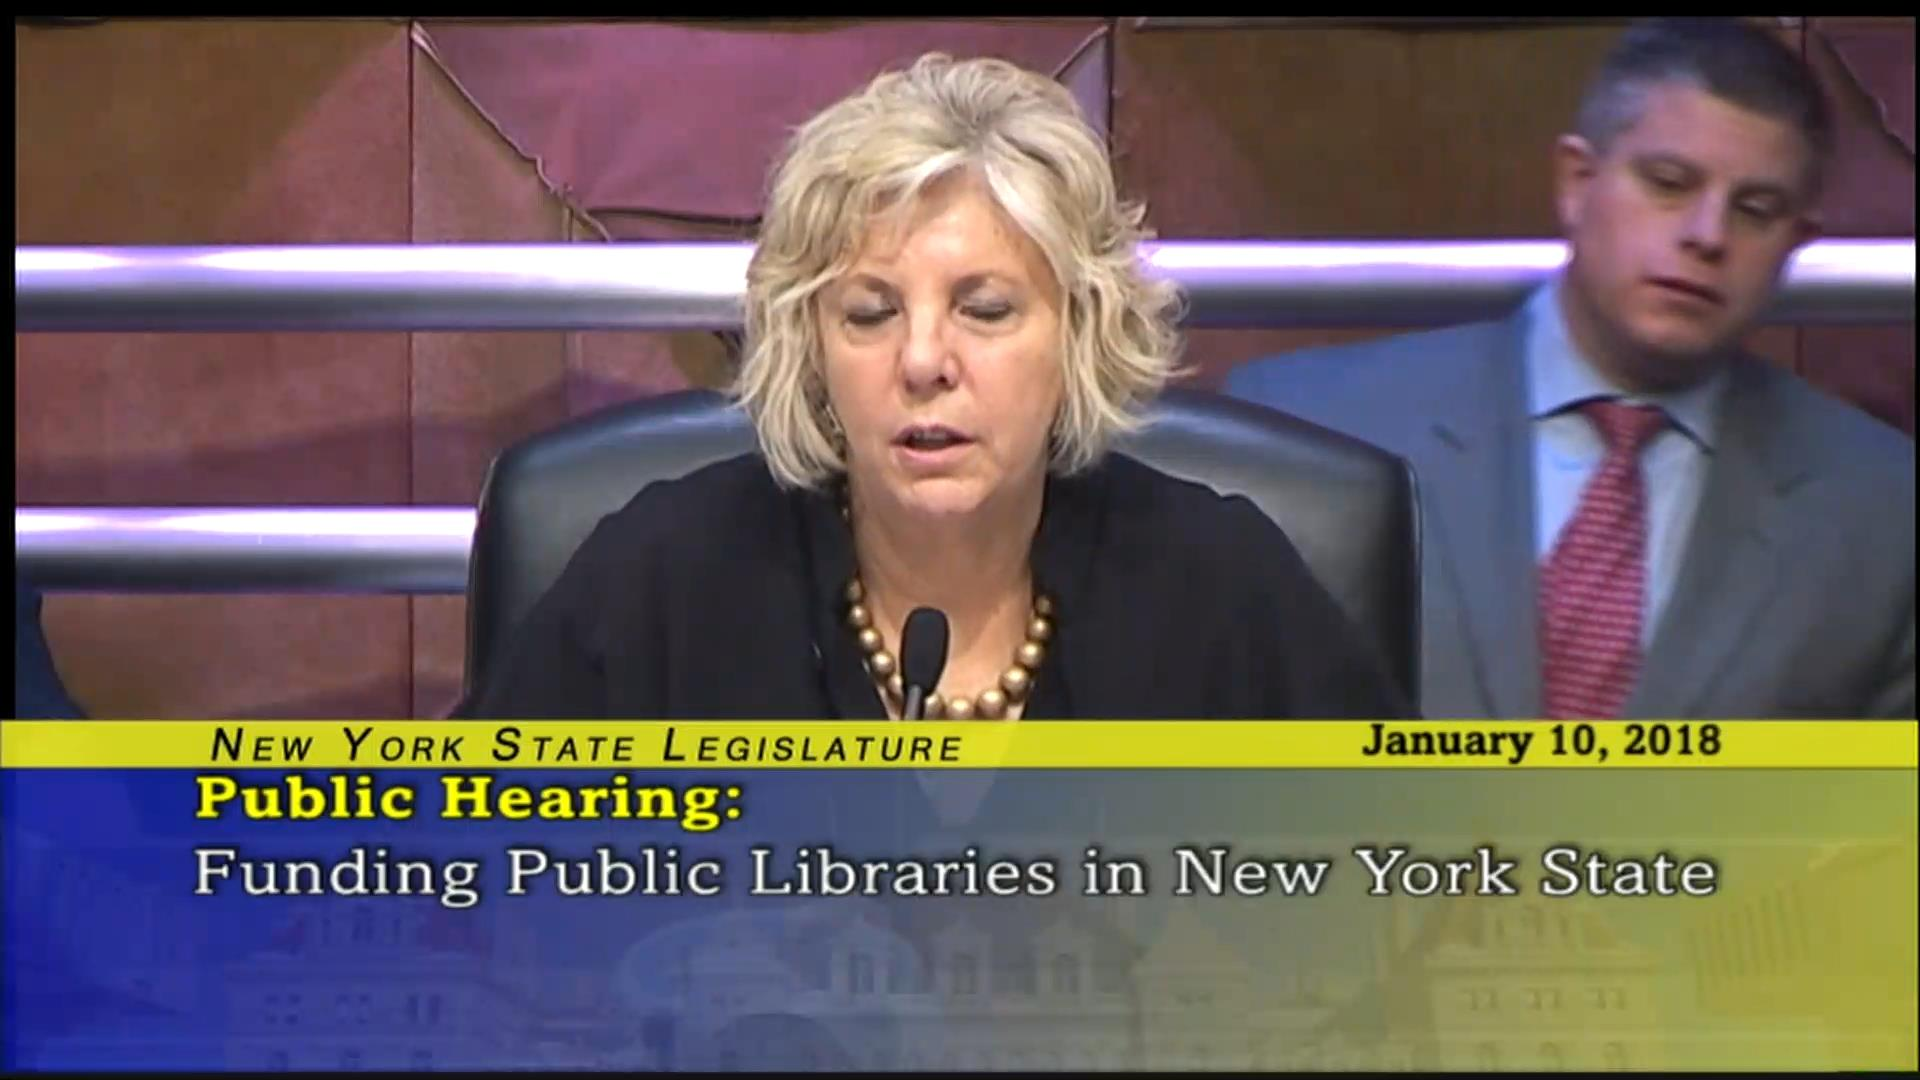 Funding for Libraries